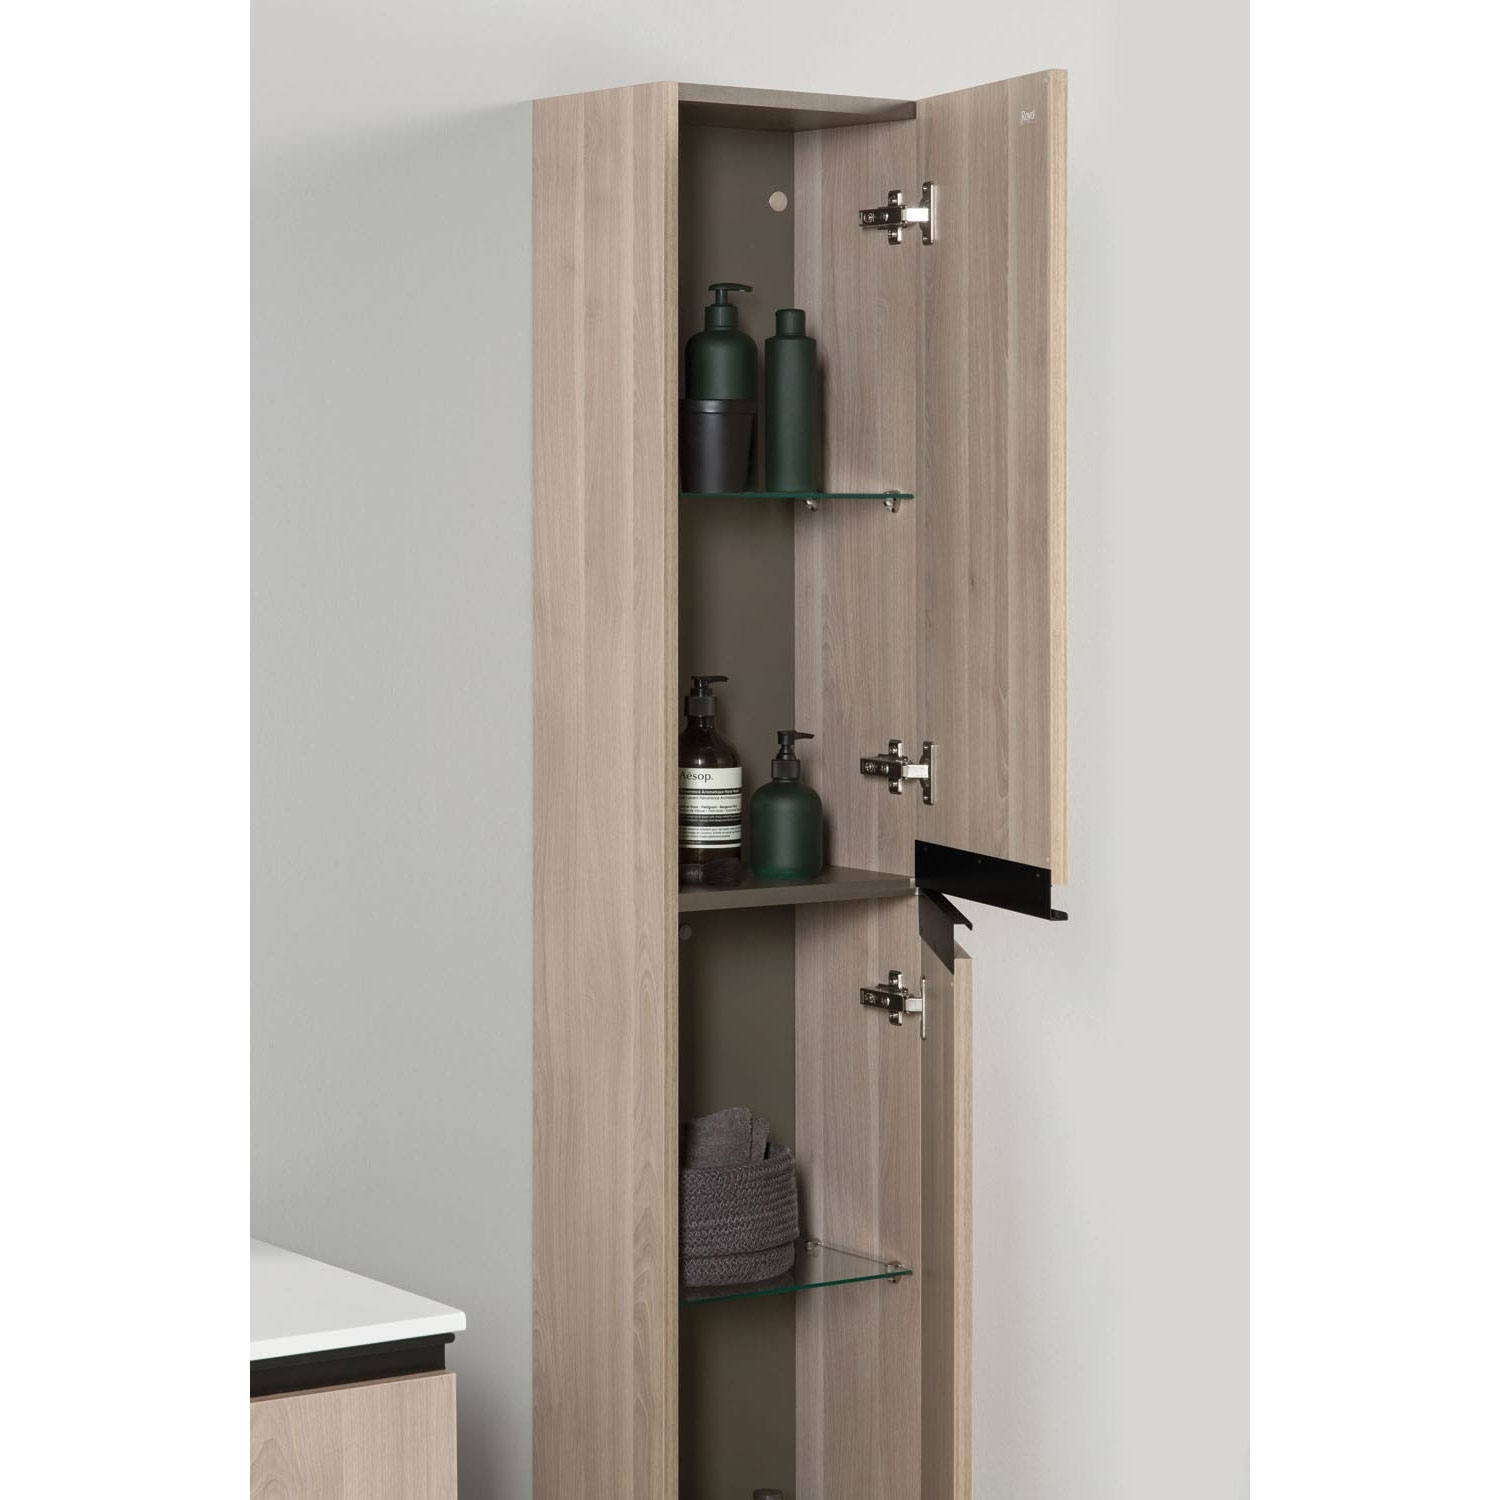 Verona Structure Wall Hung 2-Door Tall Unit 300mm Wide - Matt White